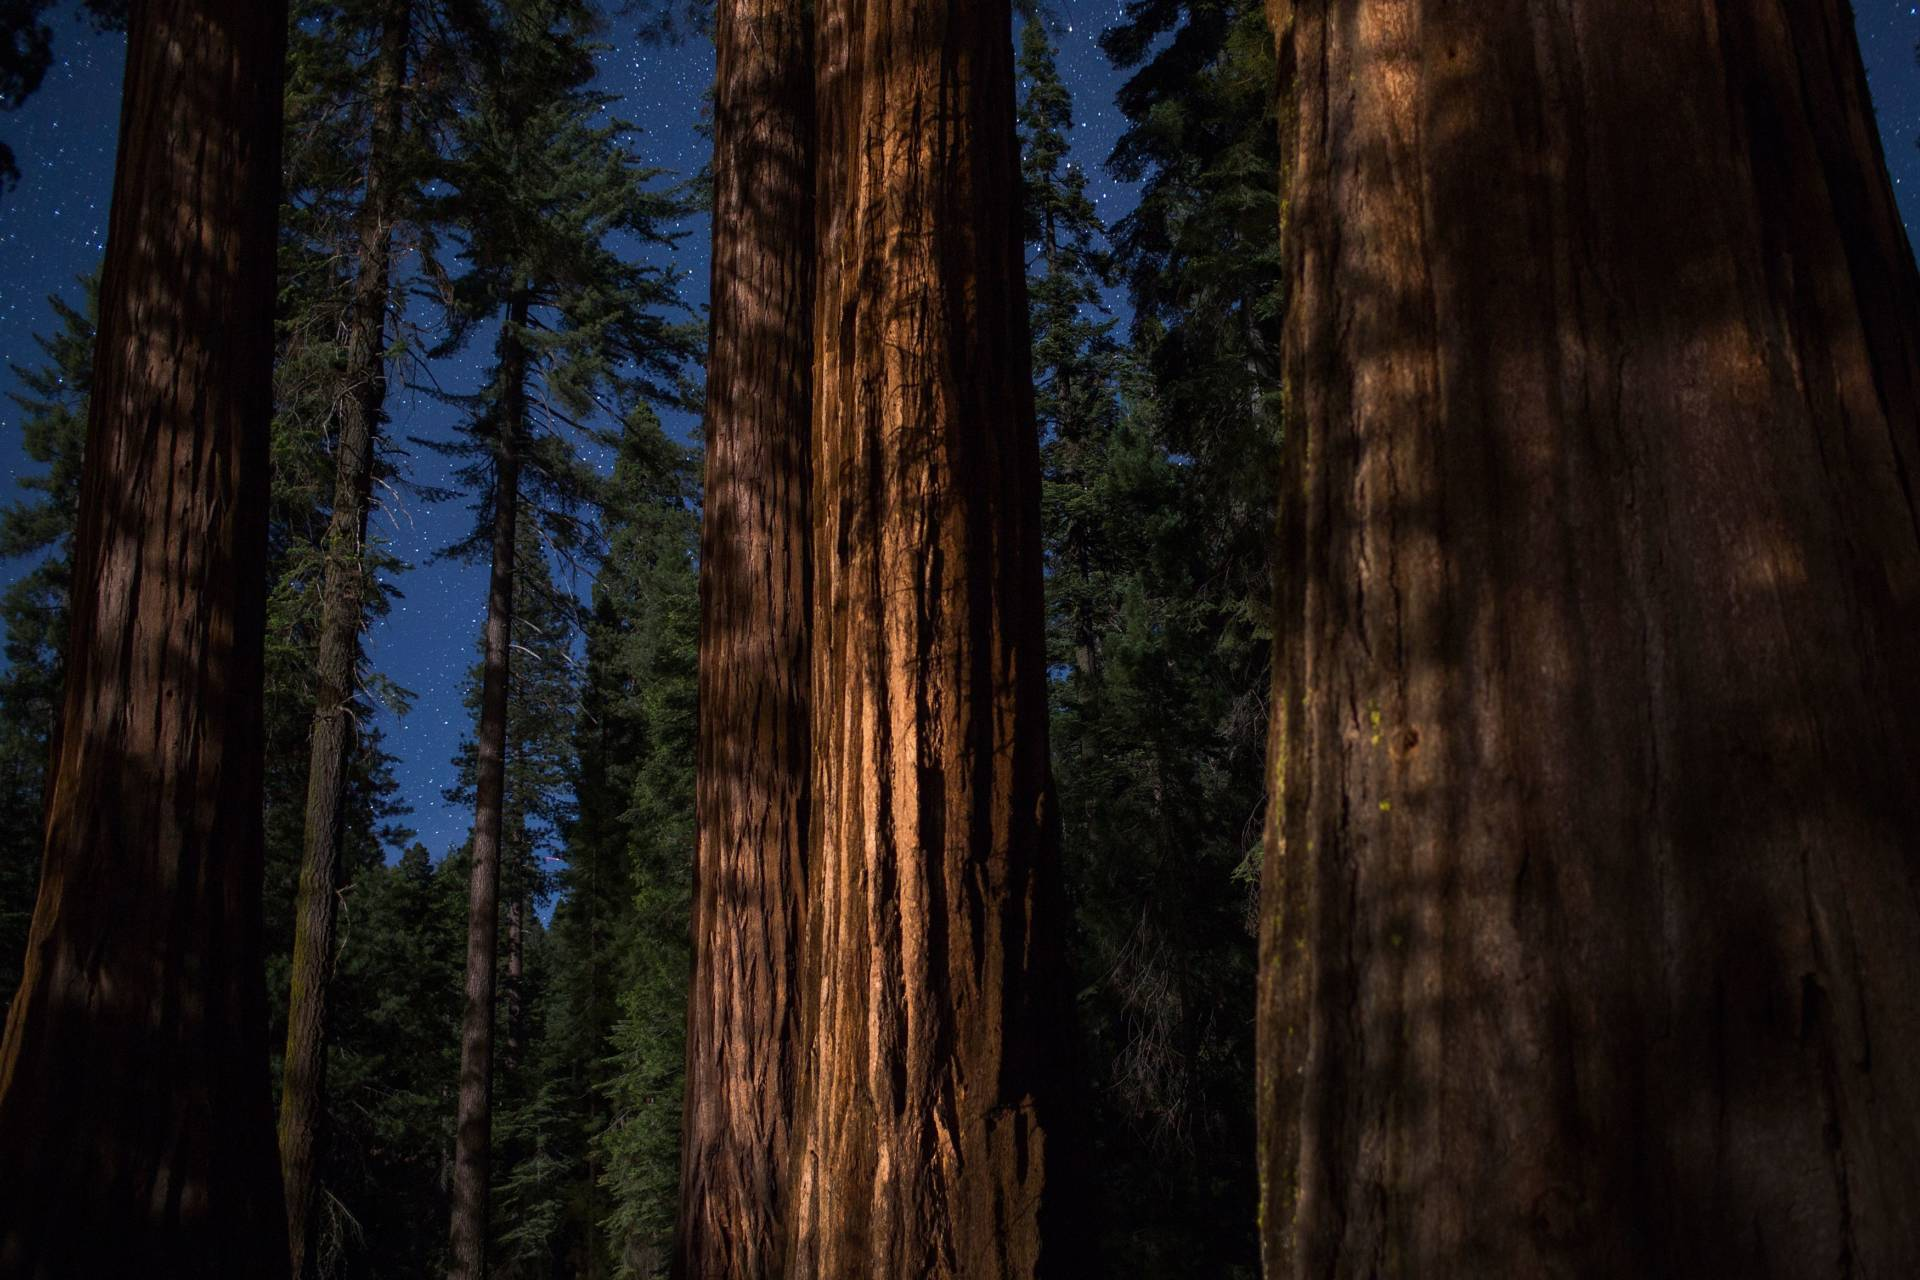 Sequoia trees under a starry sky in the Mariposa Grove of Giant Sequoias on May 21, 2018 in Yosemite National Park. The grove reopened recently after a three-year renovation project to better protect the trees that can live more than 3,000 years.  DAVID MCNEW/AFP/Getty Images